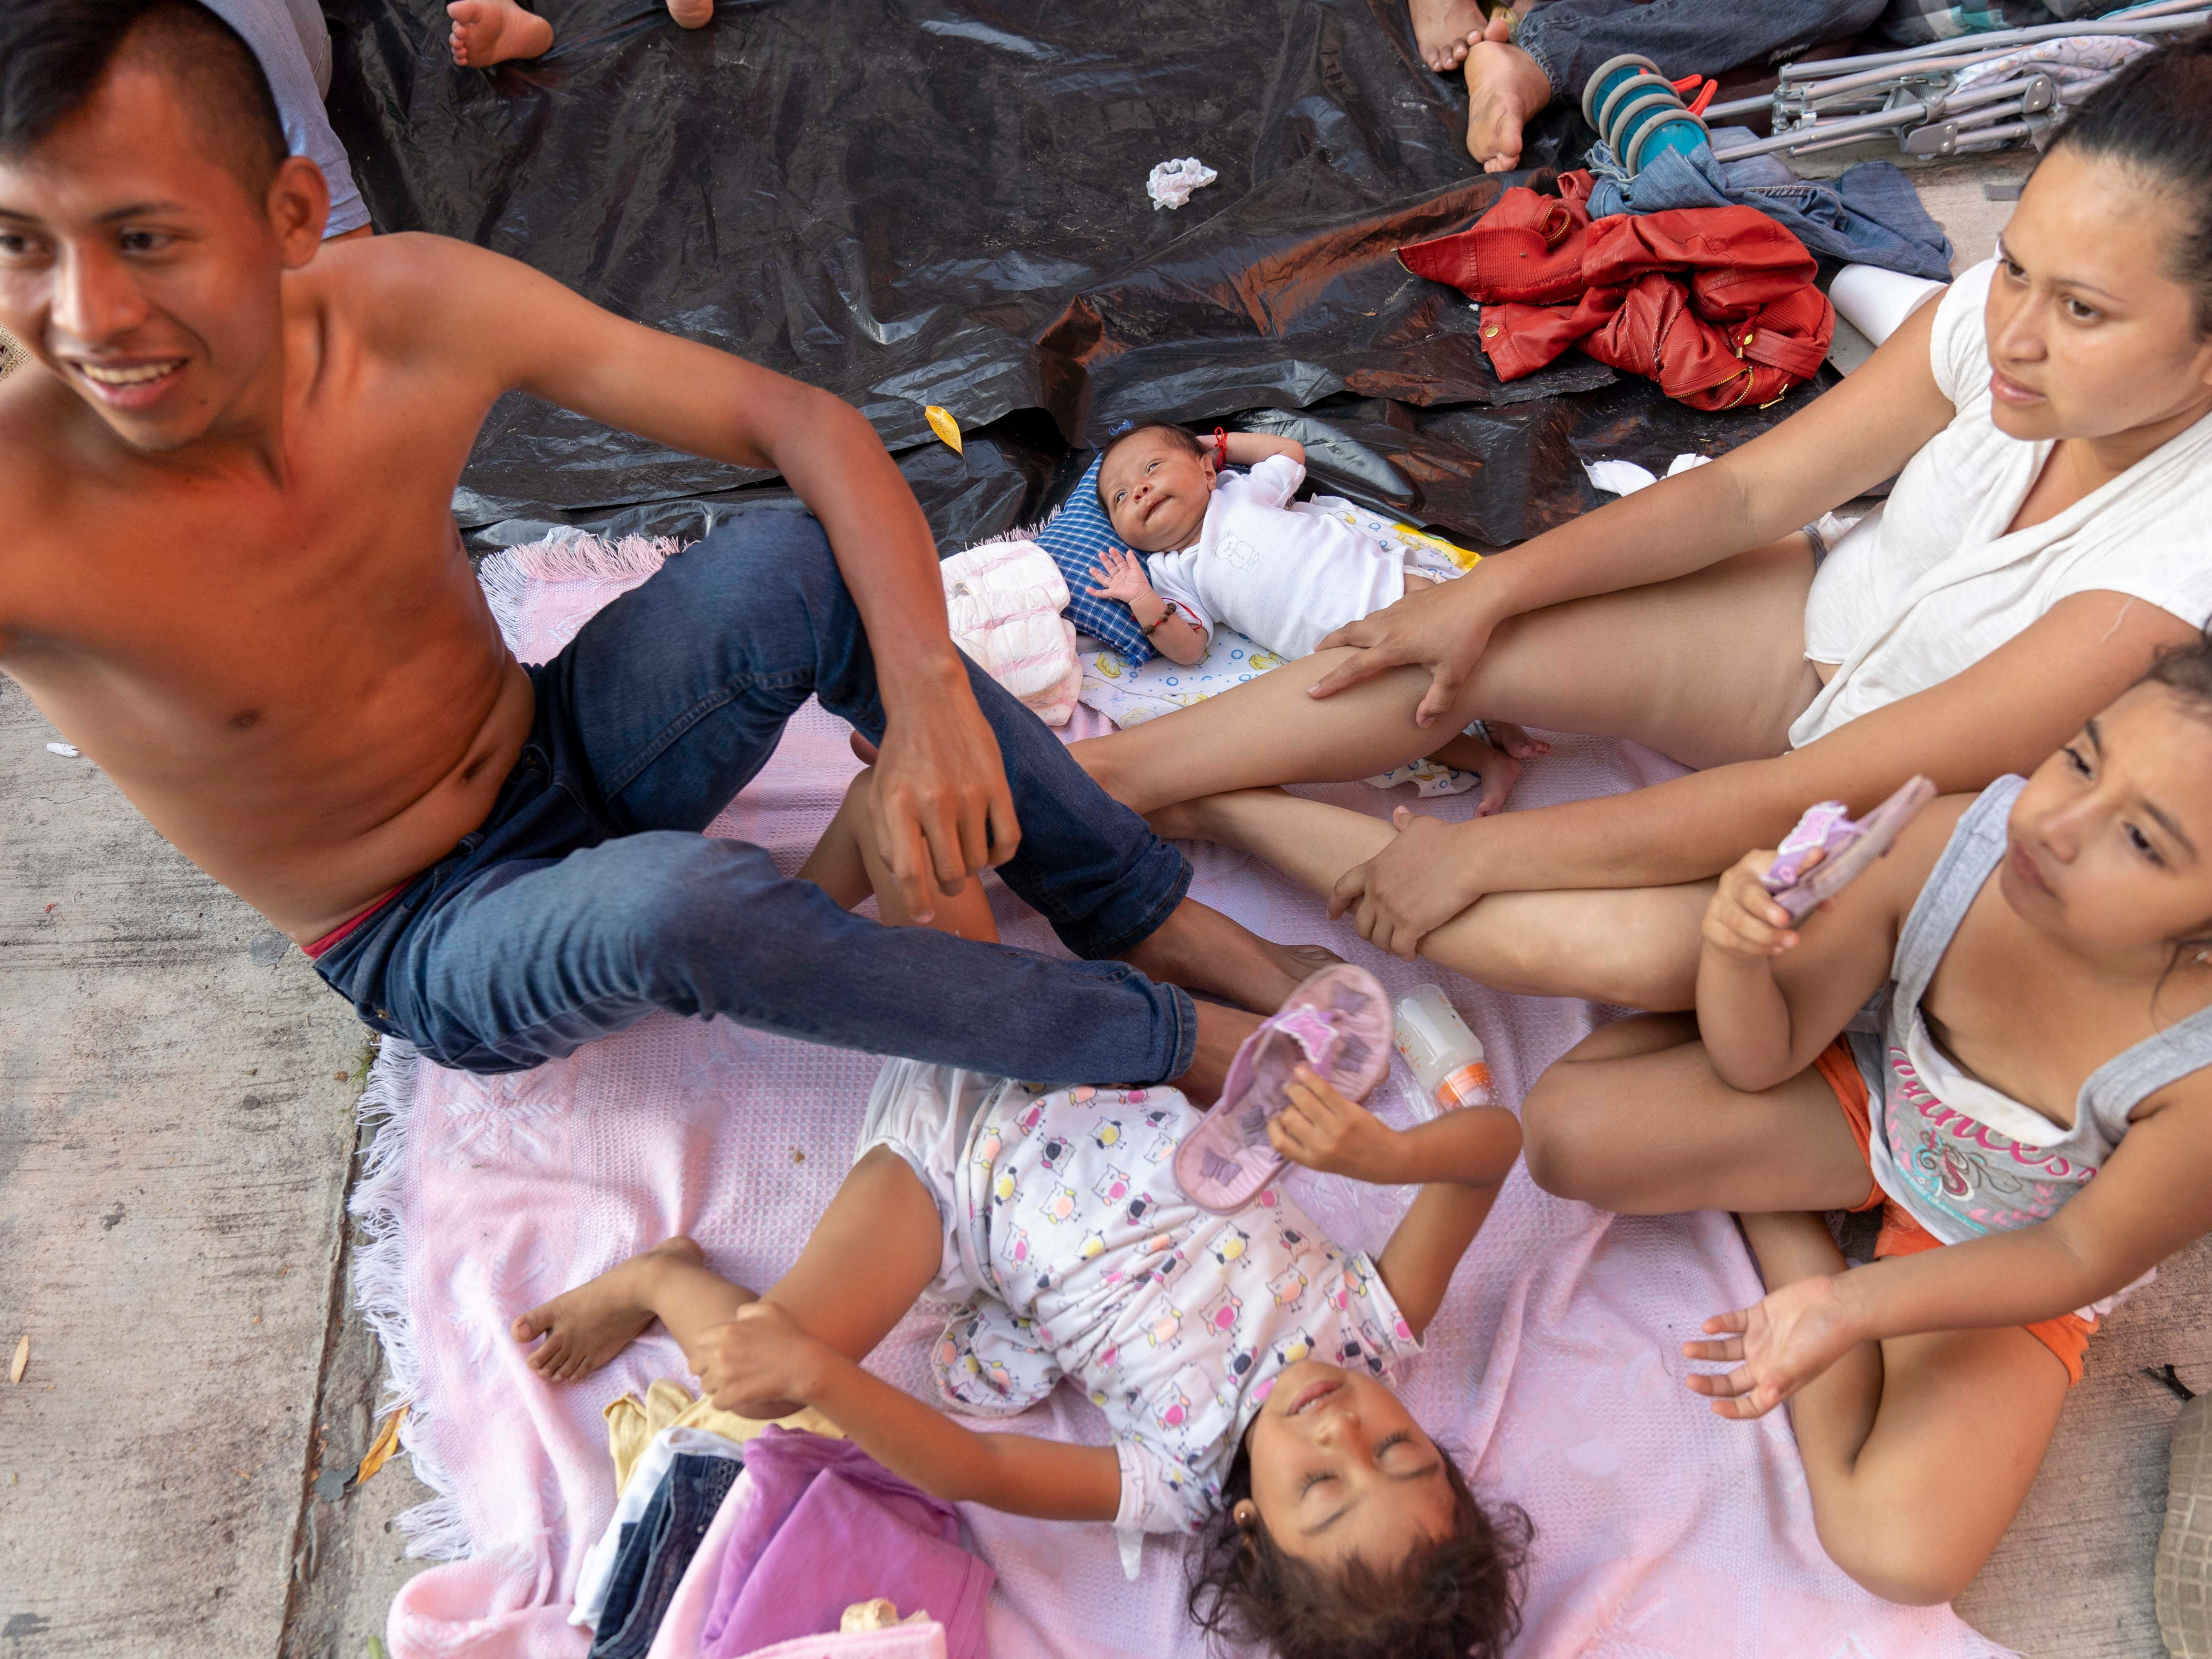 Ernesto Martinez, 27, and his wife Yesenia, 23, are traveling with their three daughters, including a baby who was just 17-days-old when they joined the caravan on Oct. 20. The family is from San Martin, Retalhuleu, Guatemala. They have pushed the baby in a stroller more than 180 miles crossing through the state of Chiapas, before reaching the state of Oaxaca on Oct. 27, 2018.